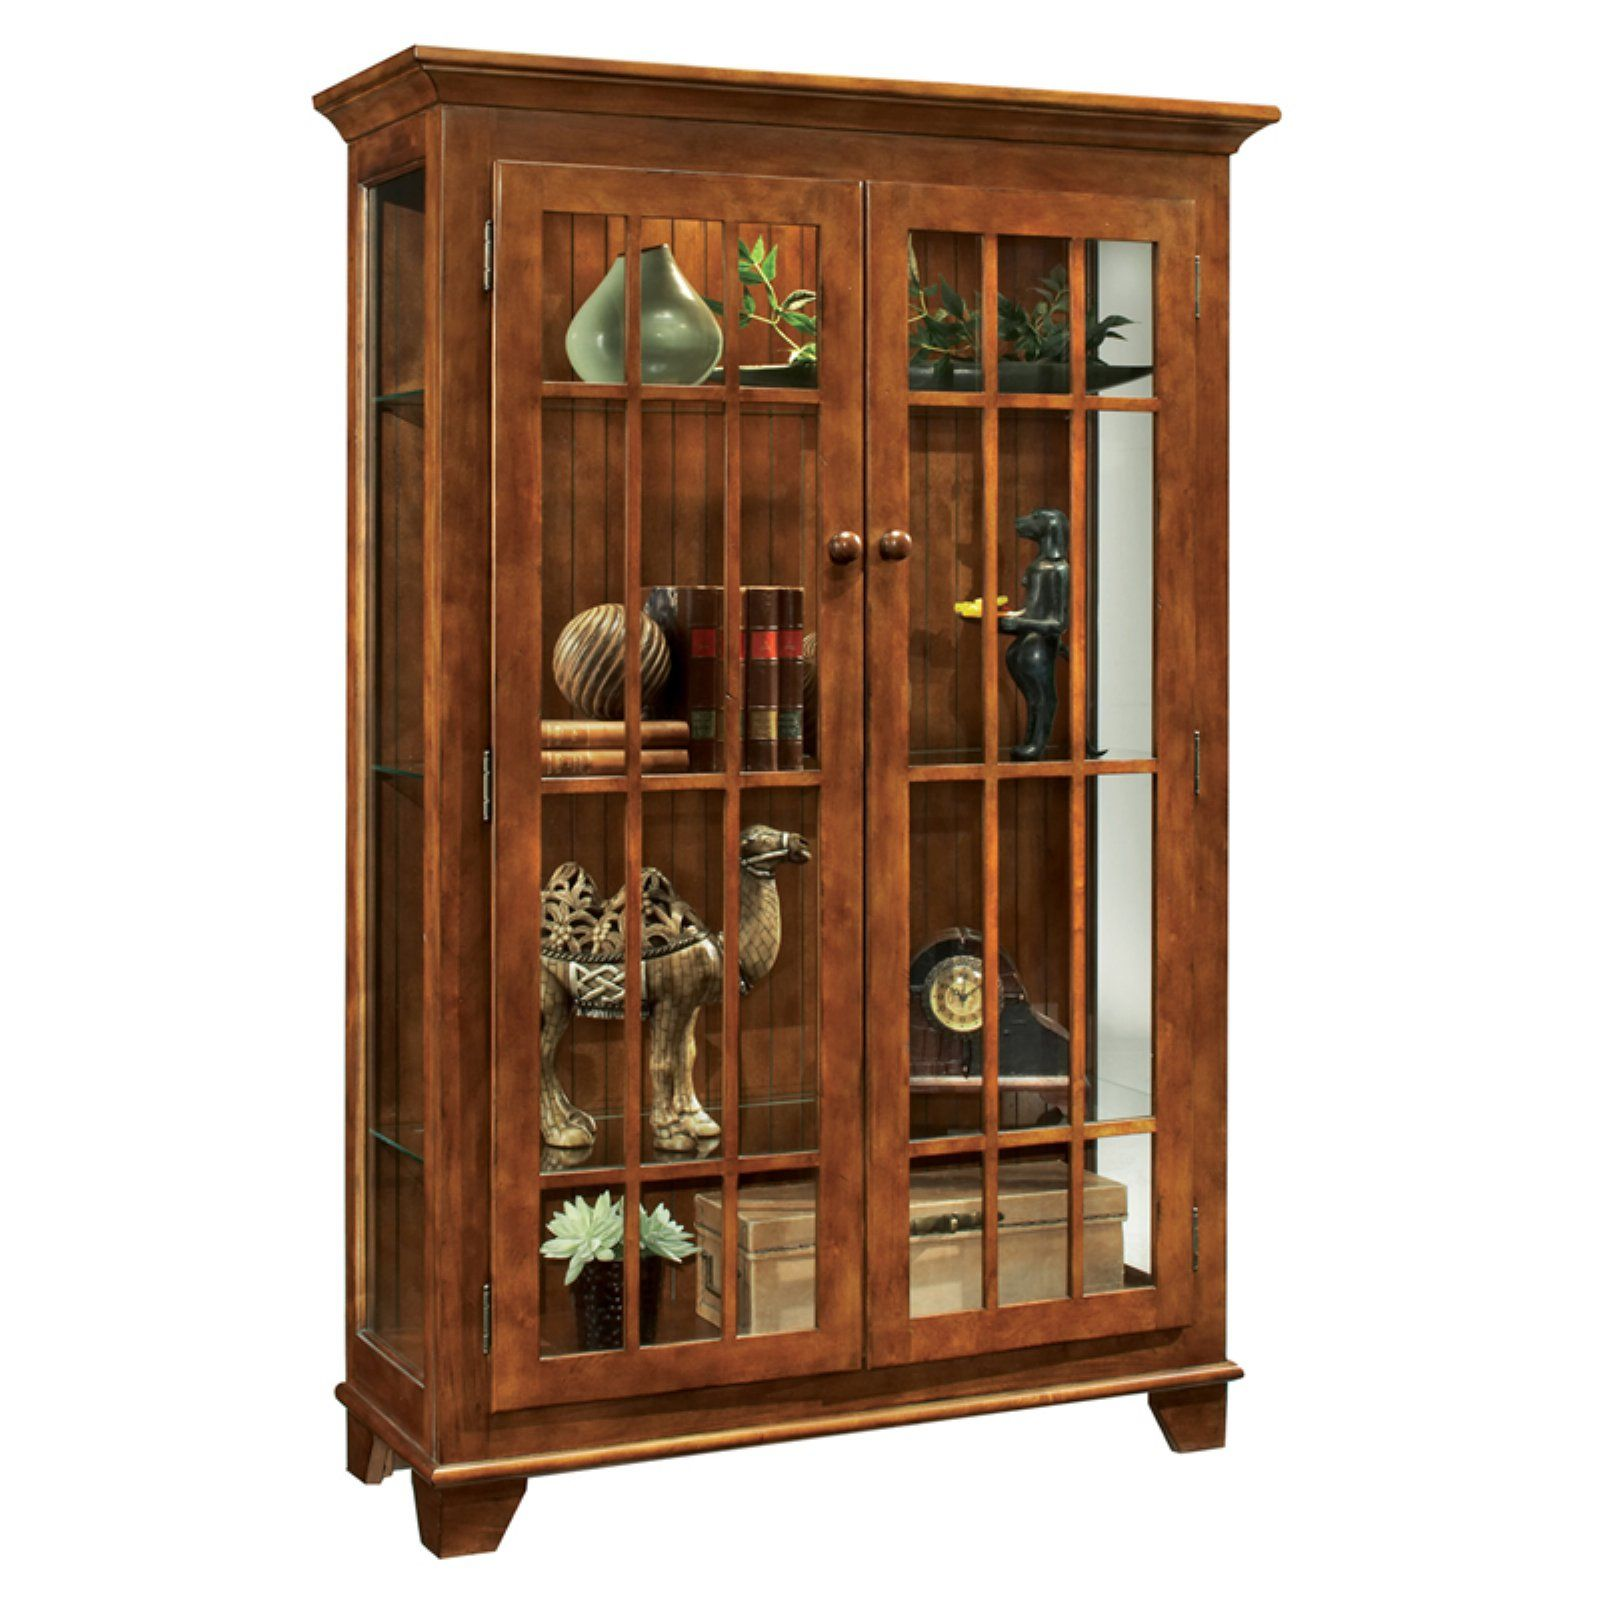 Philip Reinisch Company Color Time Monterey Display Curio